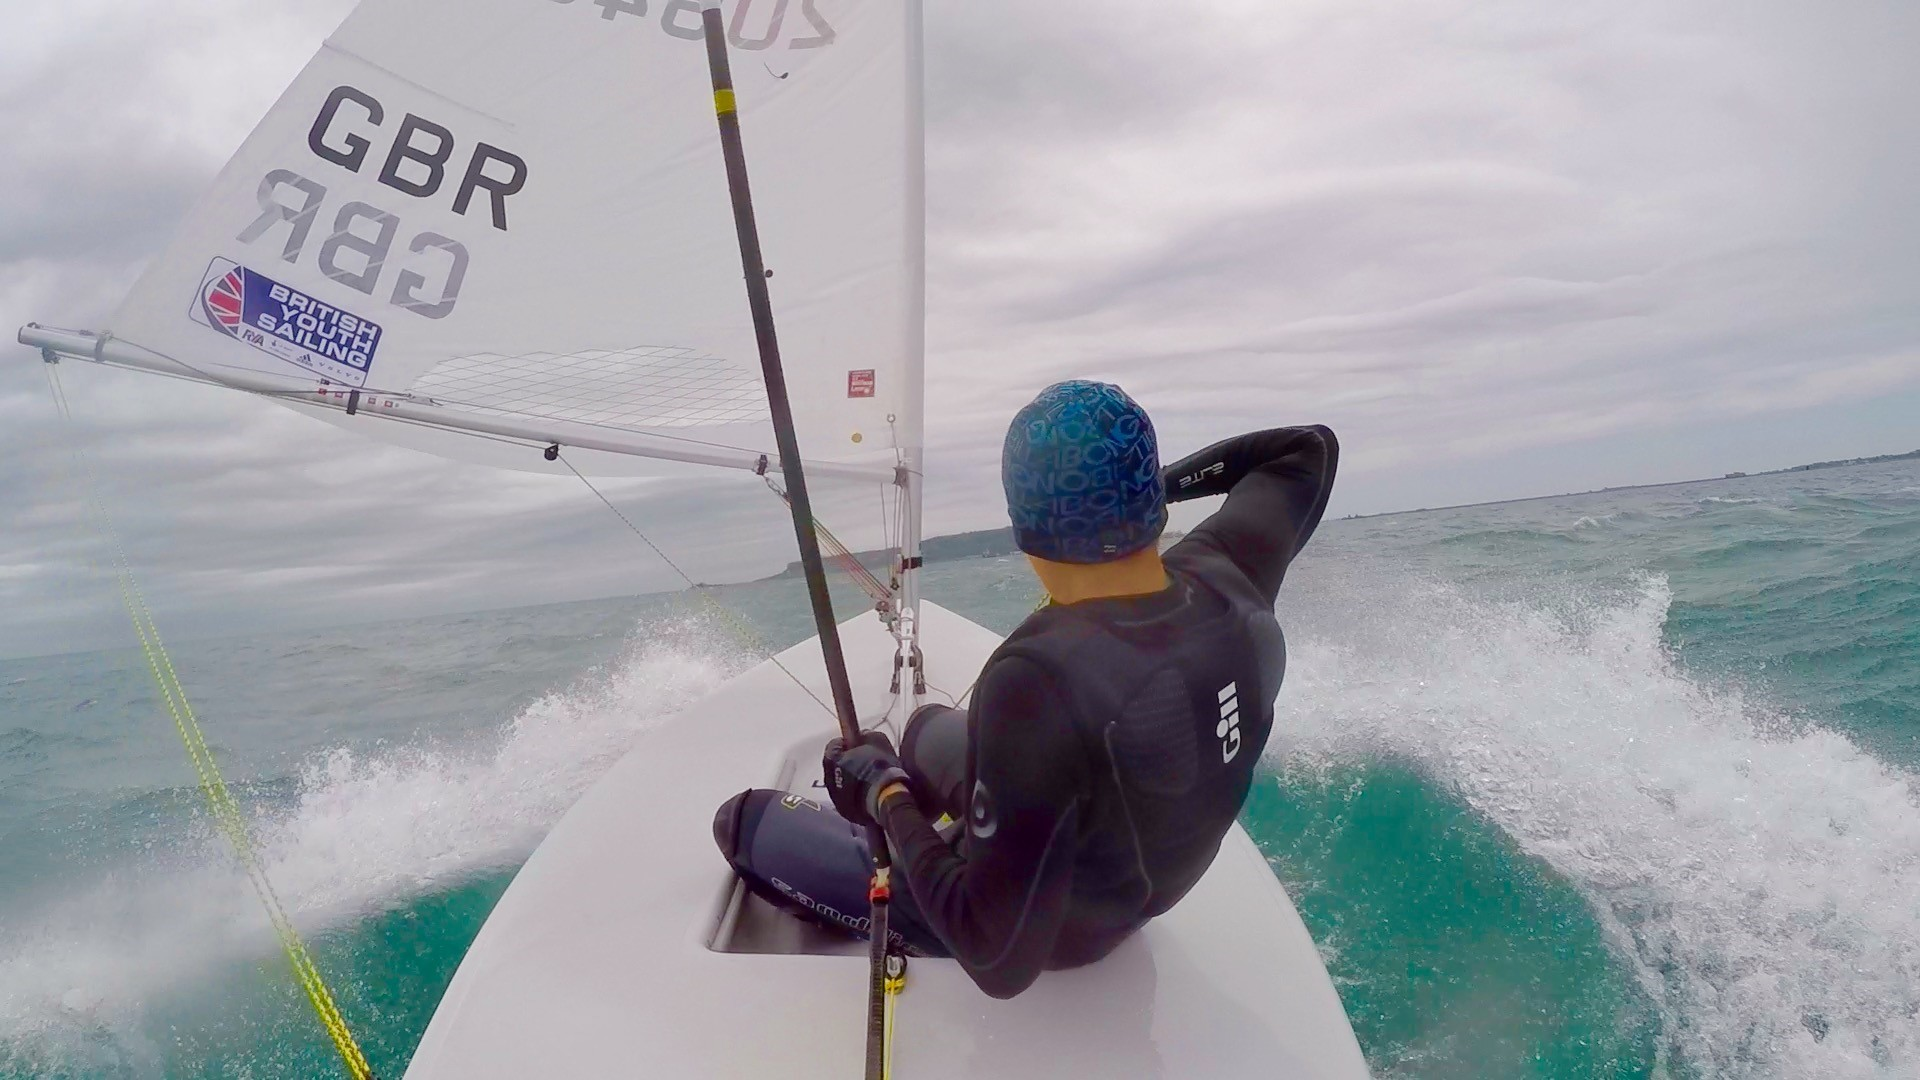 Looking forward to the upcoming classic windy Weymouth winter!